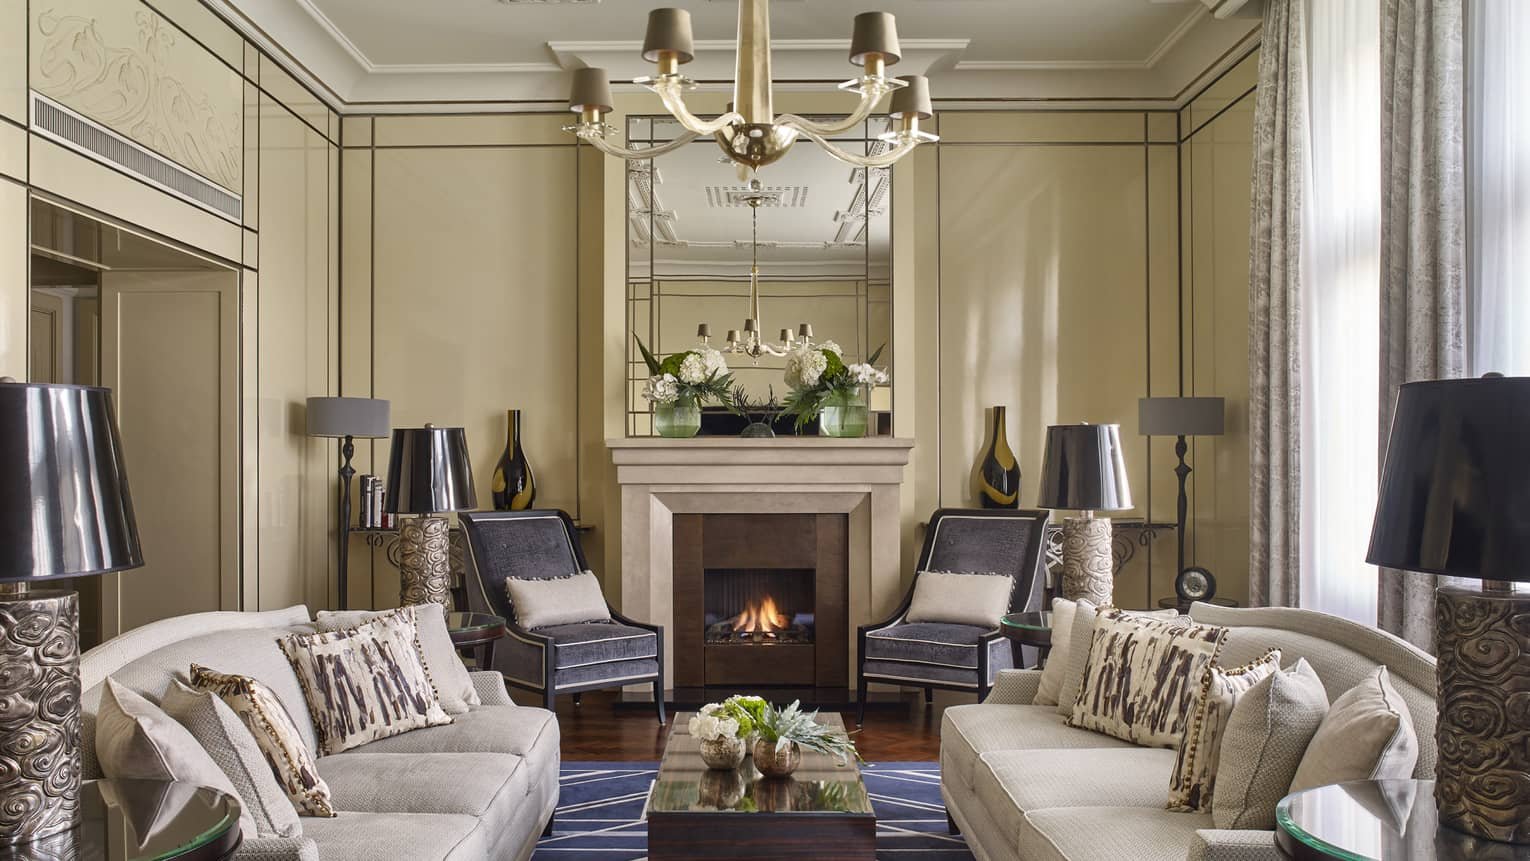 Grand sitting room in Royal Suite with fireplace, two couches, rug, lamps, drapes